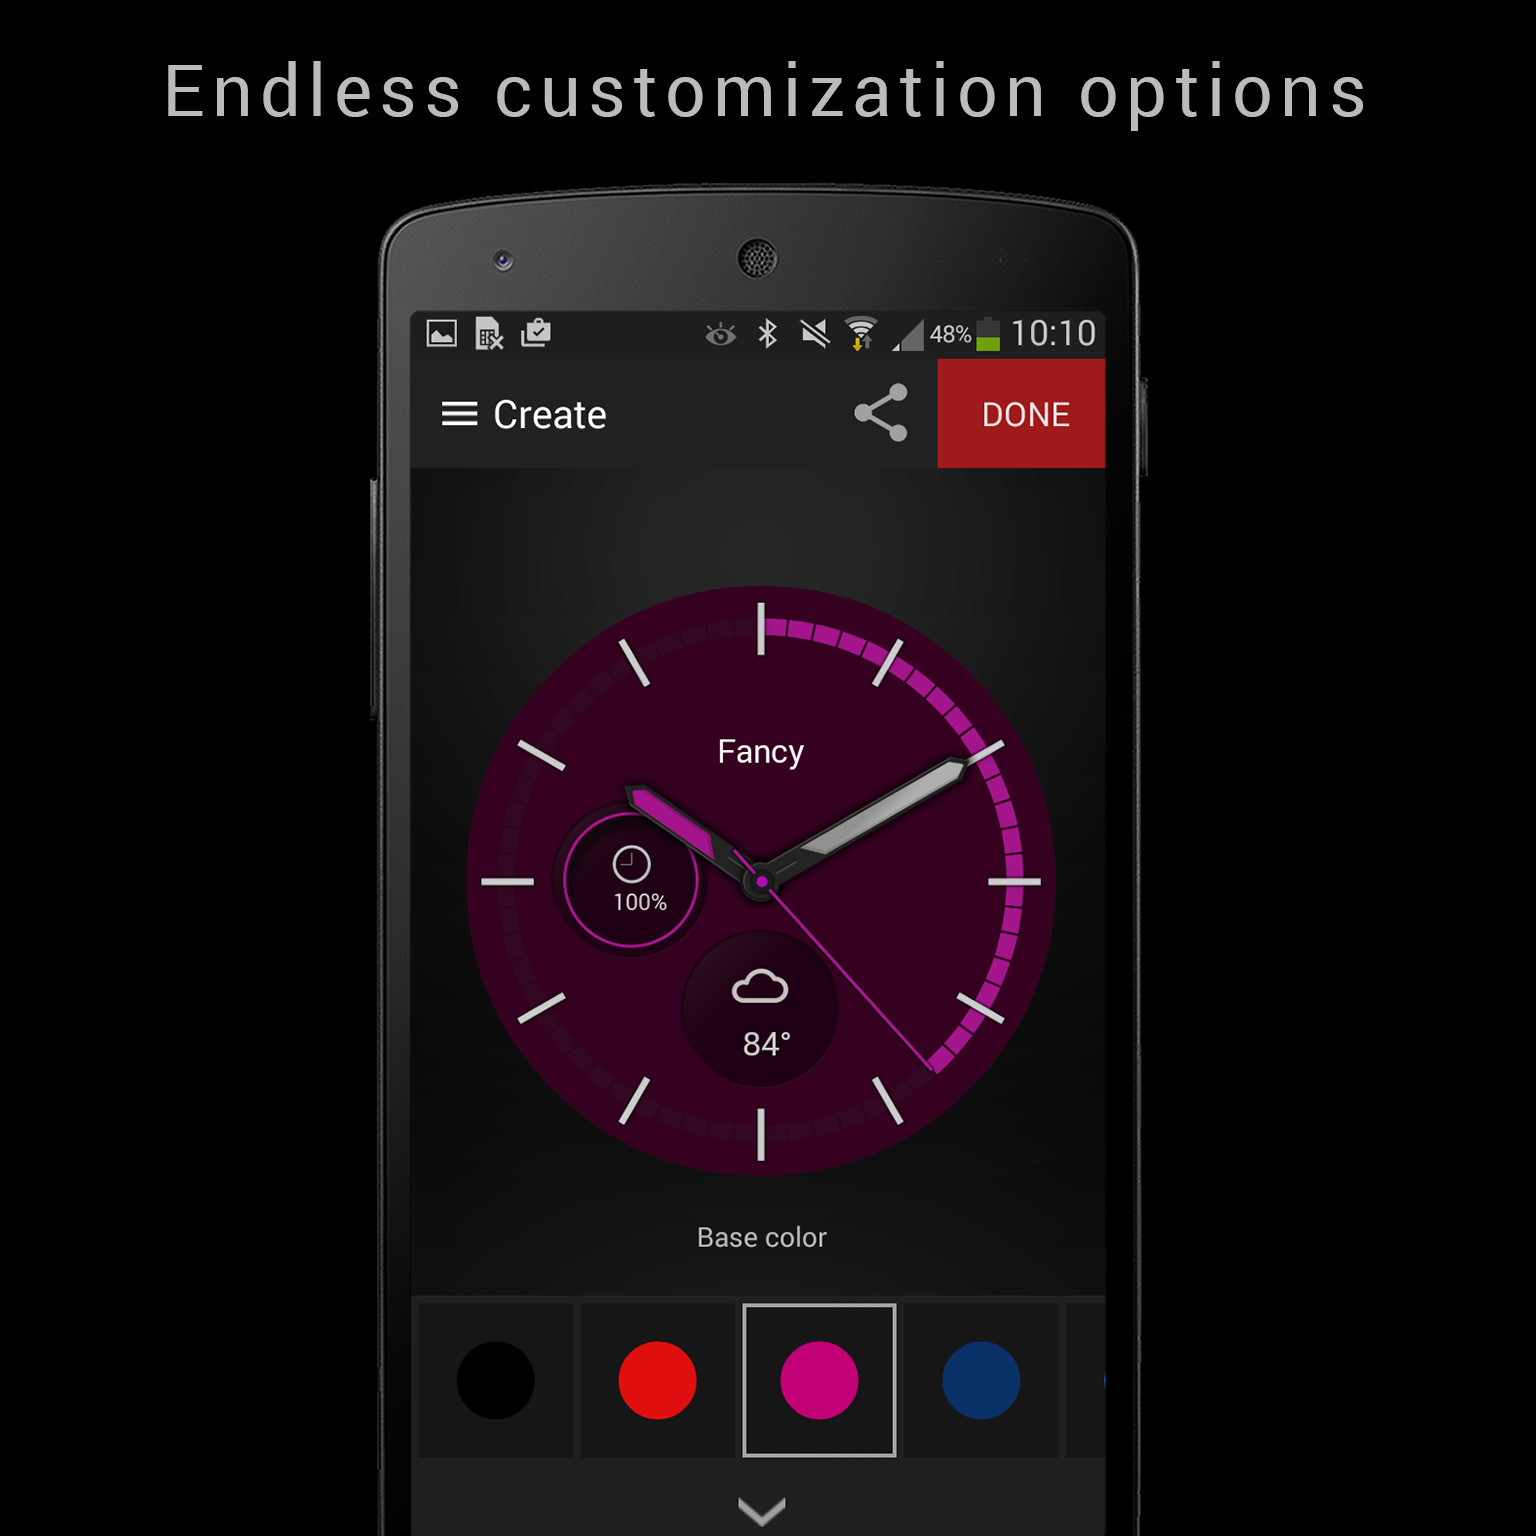 Endless-customization